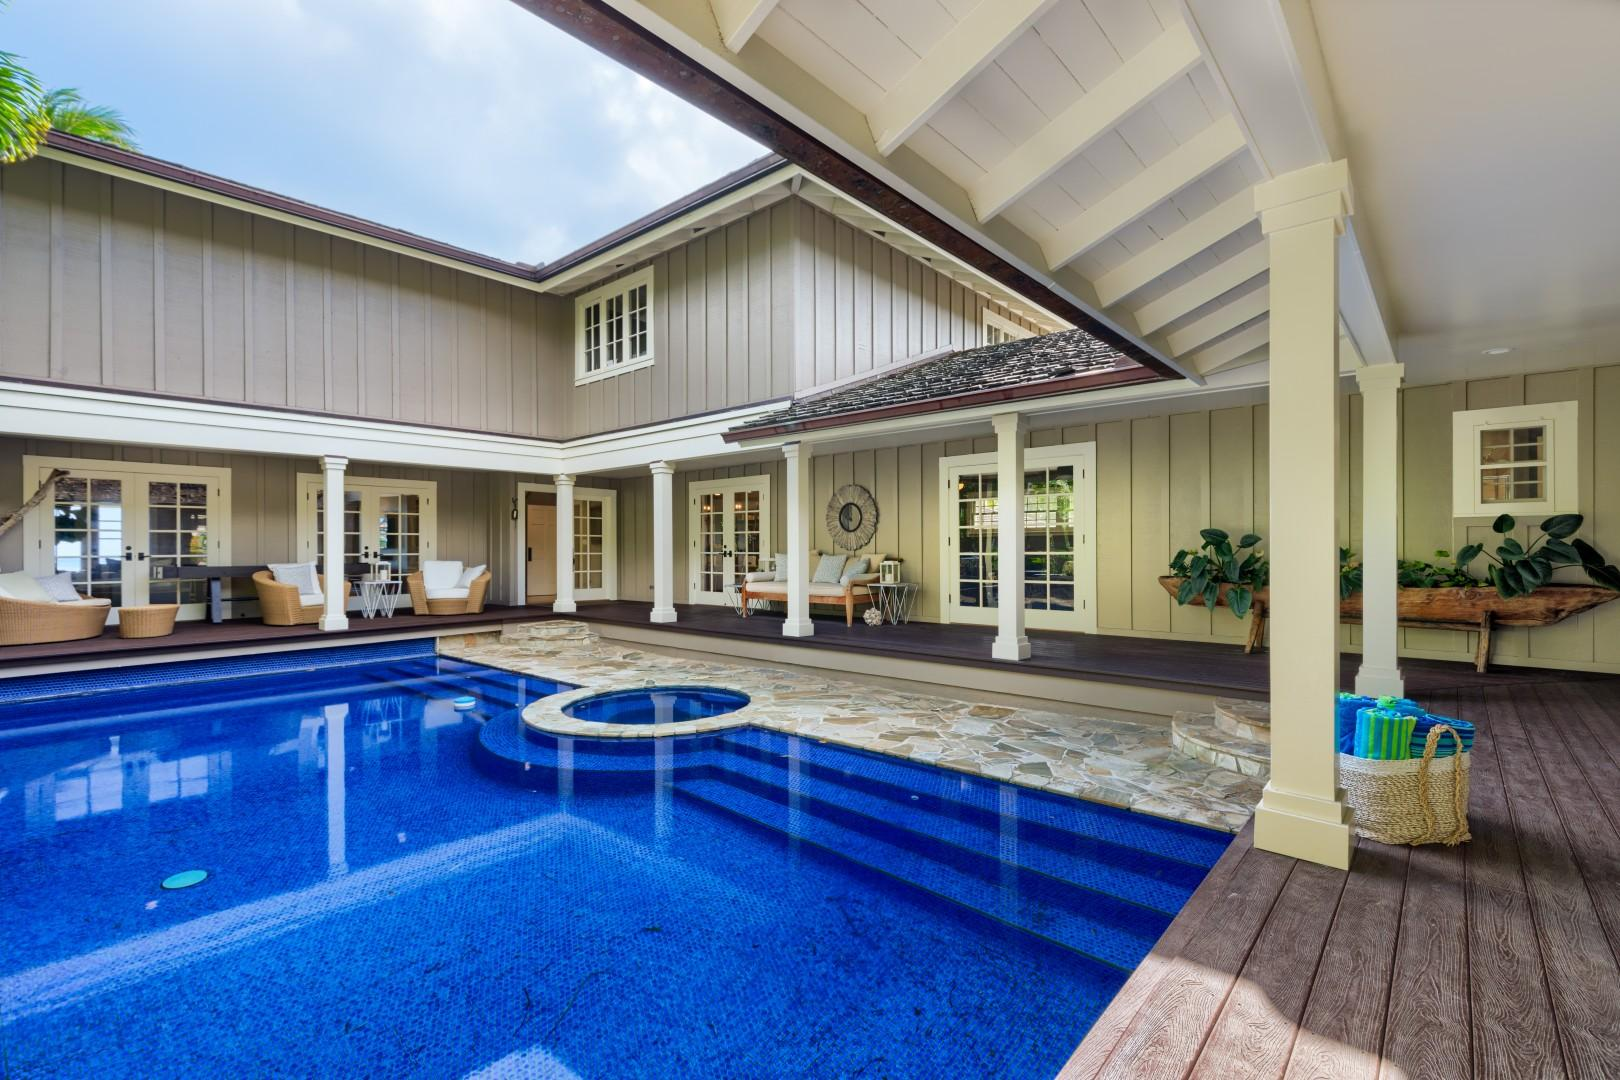 The pool area is located off of the living room, kitchen and media room. Central to all parts of the villa.